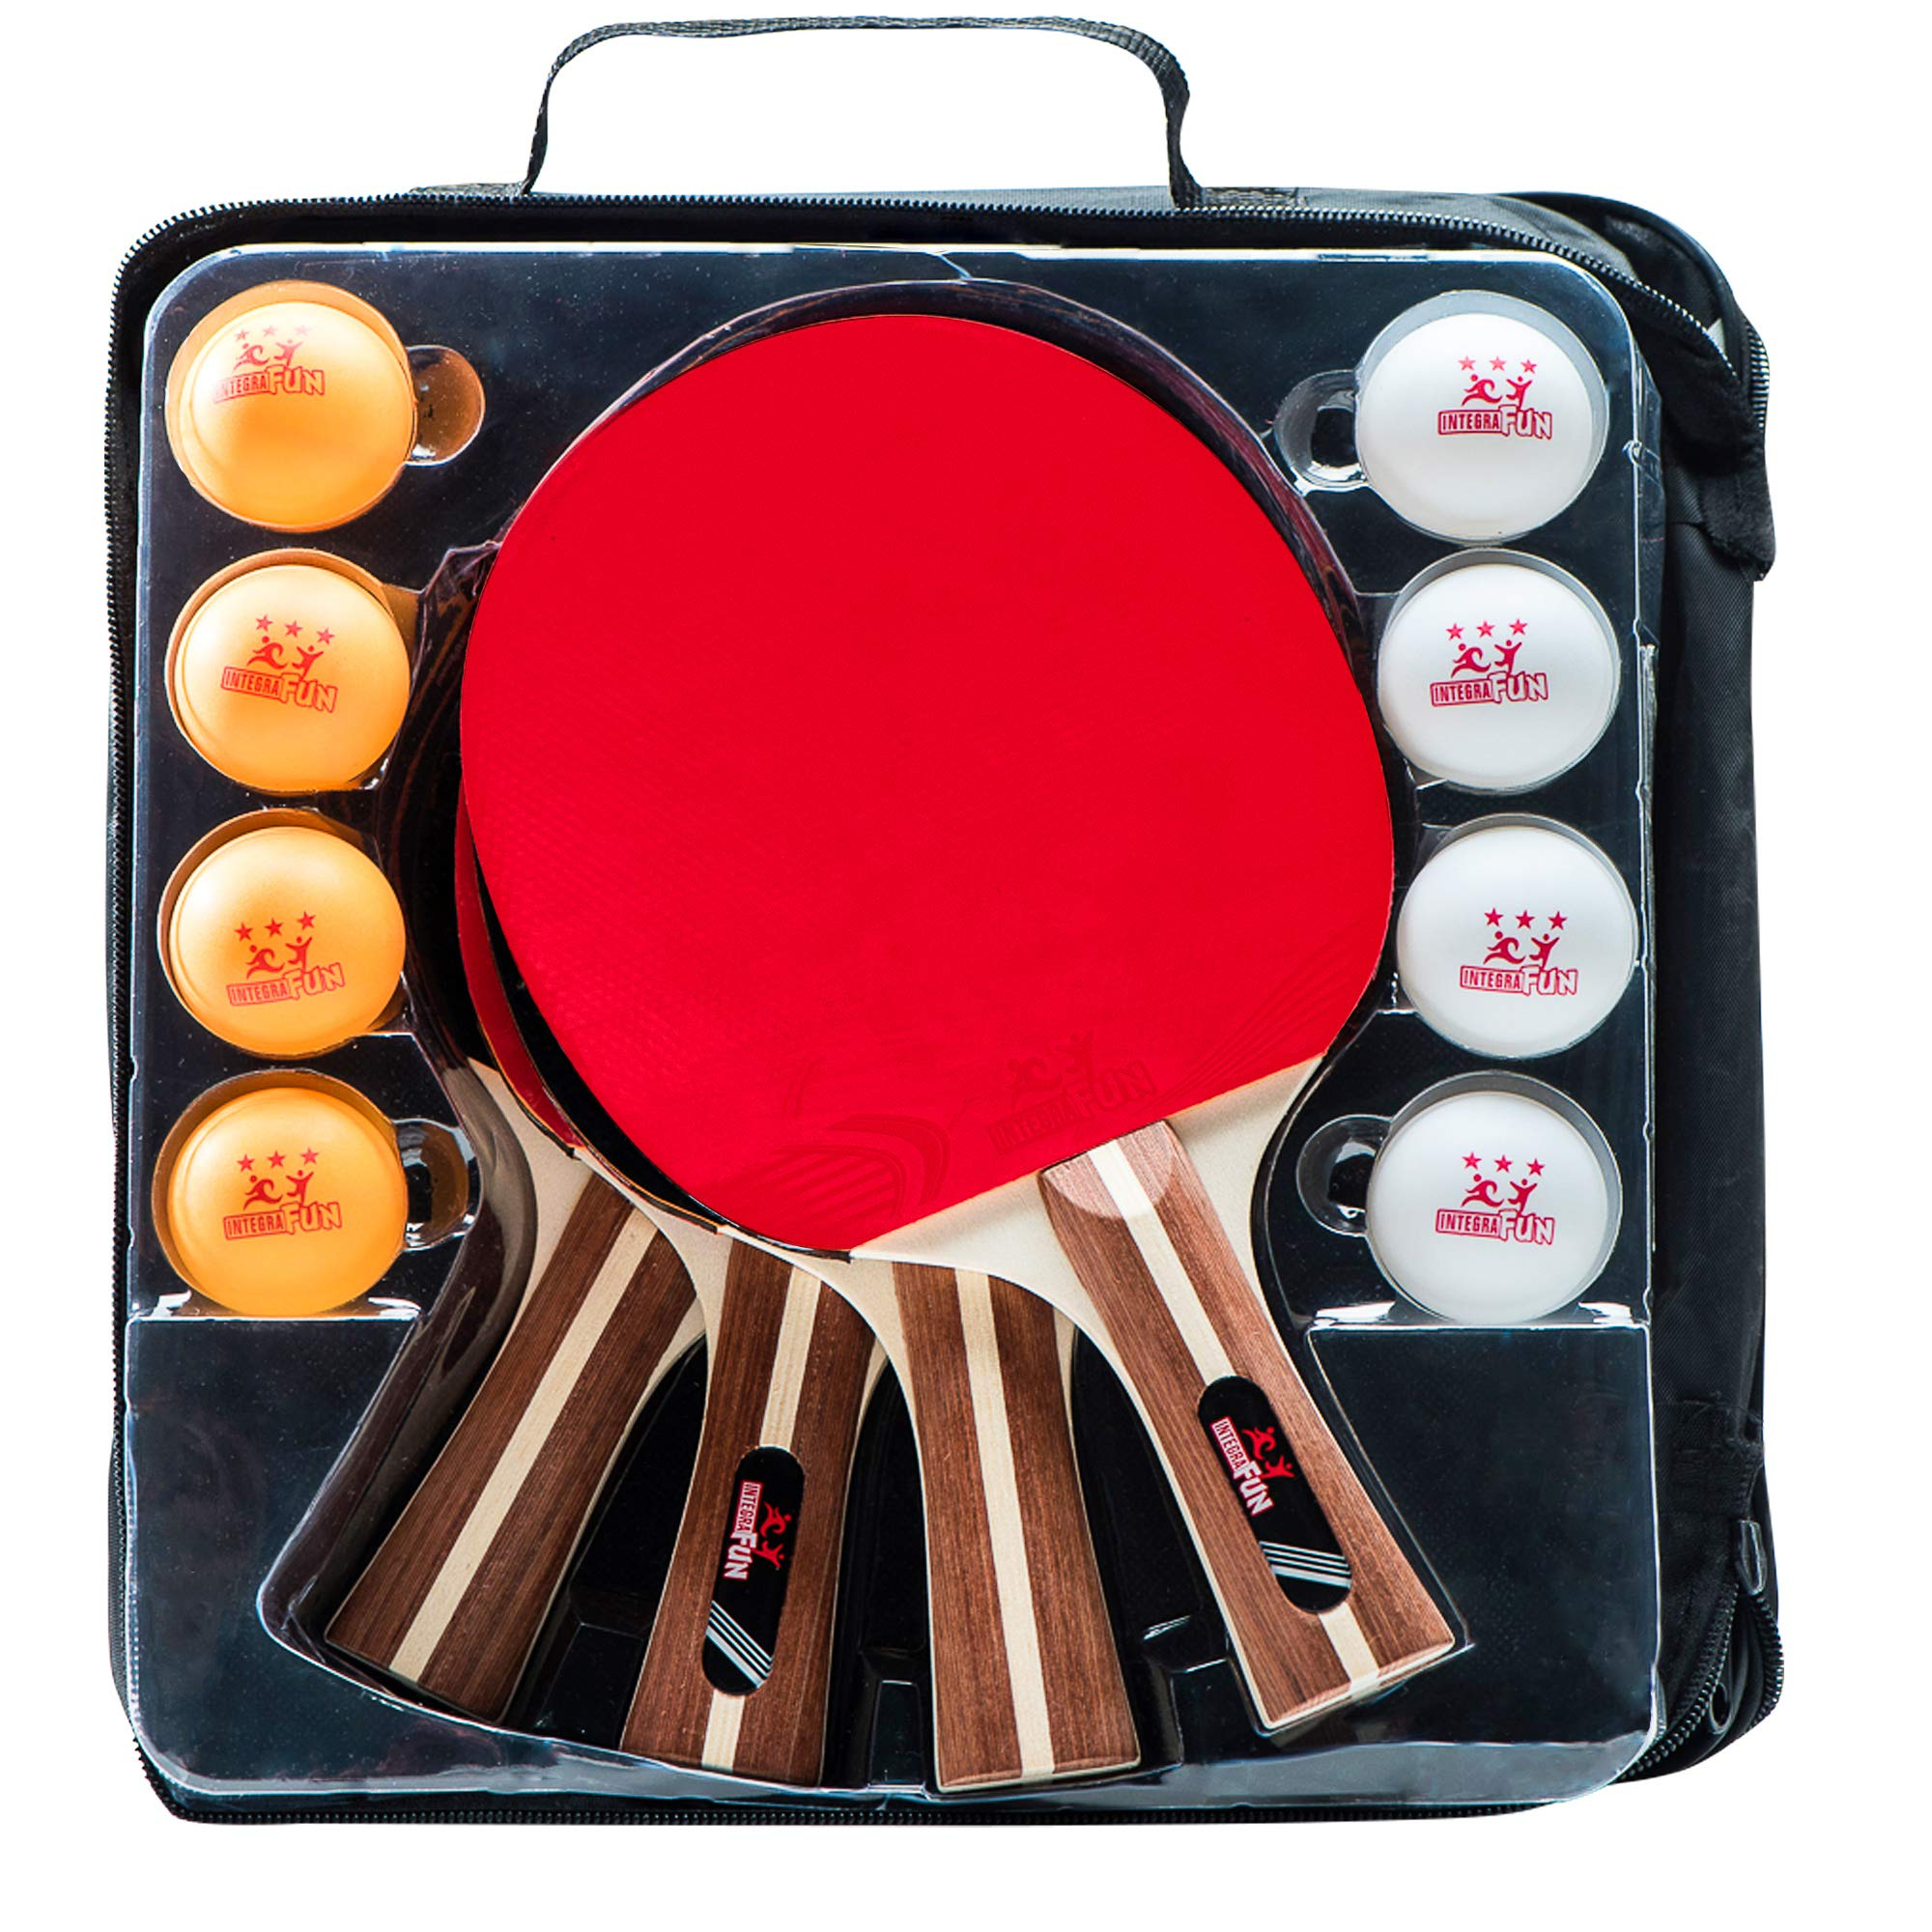 Ping Pong Paddle Set - 4 Wood Ping Pong Paddles - Ergonomic Grip - 8 Tournament